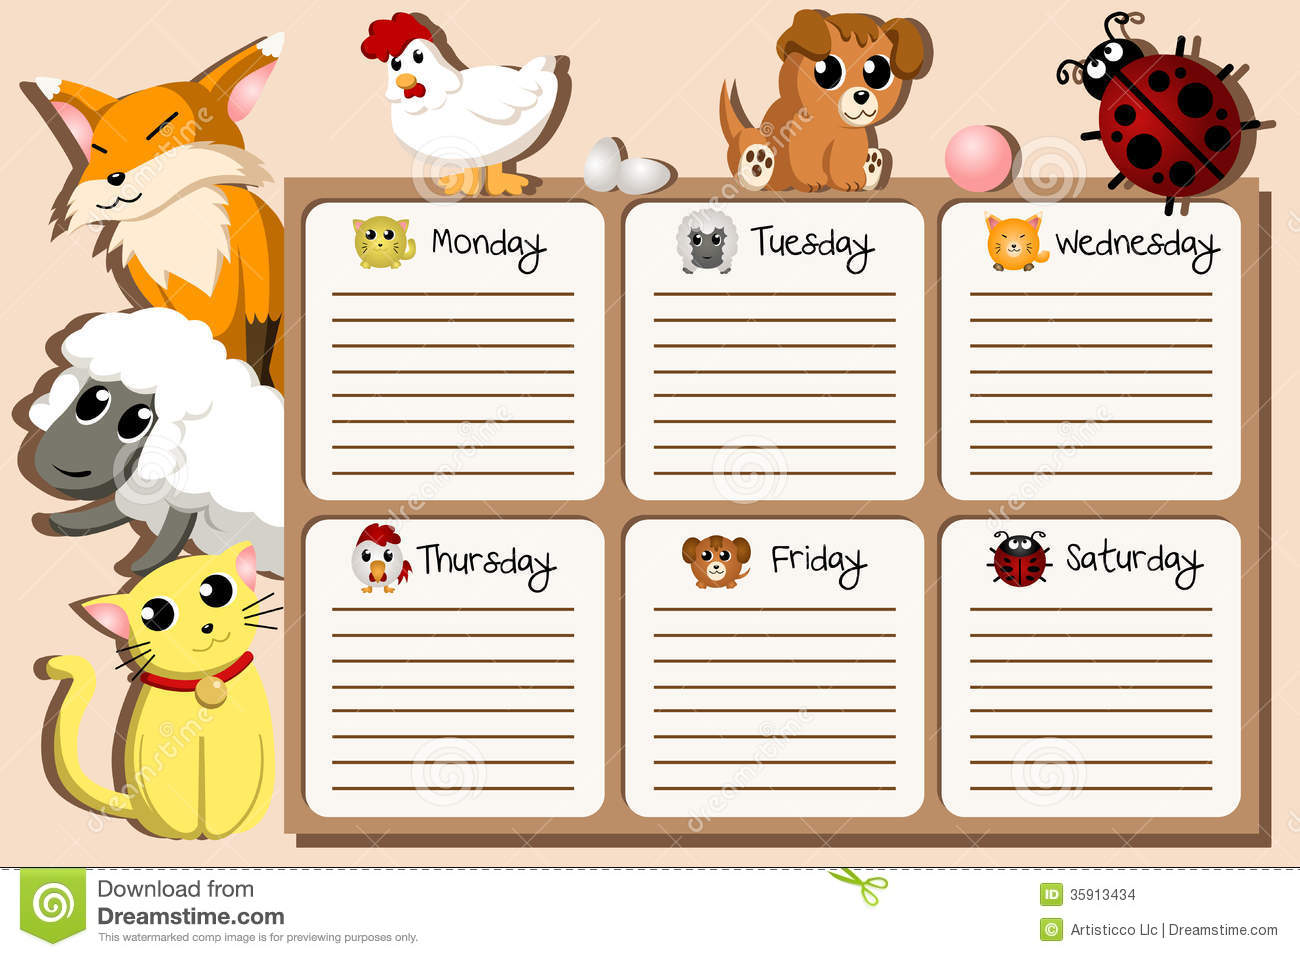 School Timetable Design Images Image 35913434 – School Time Table Designs